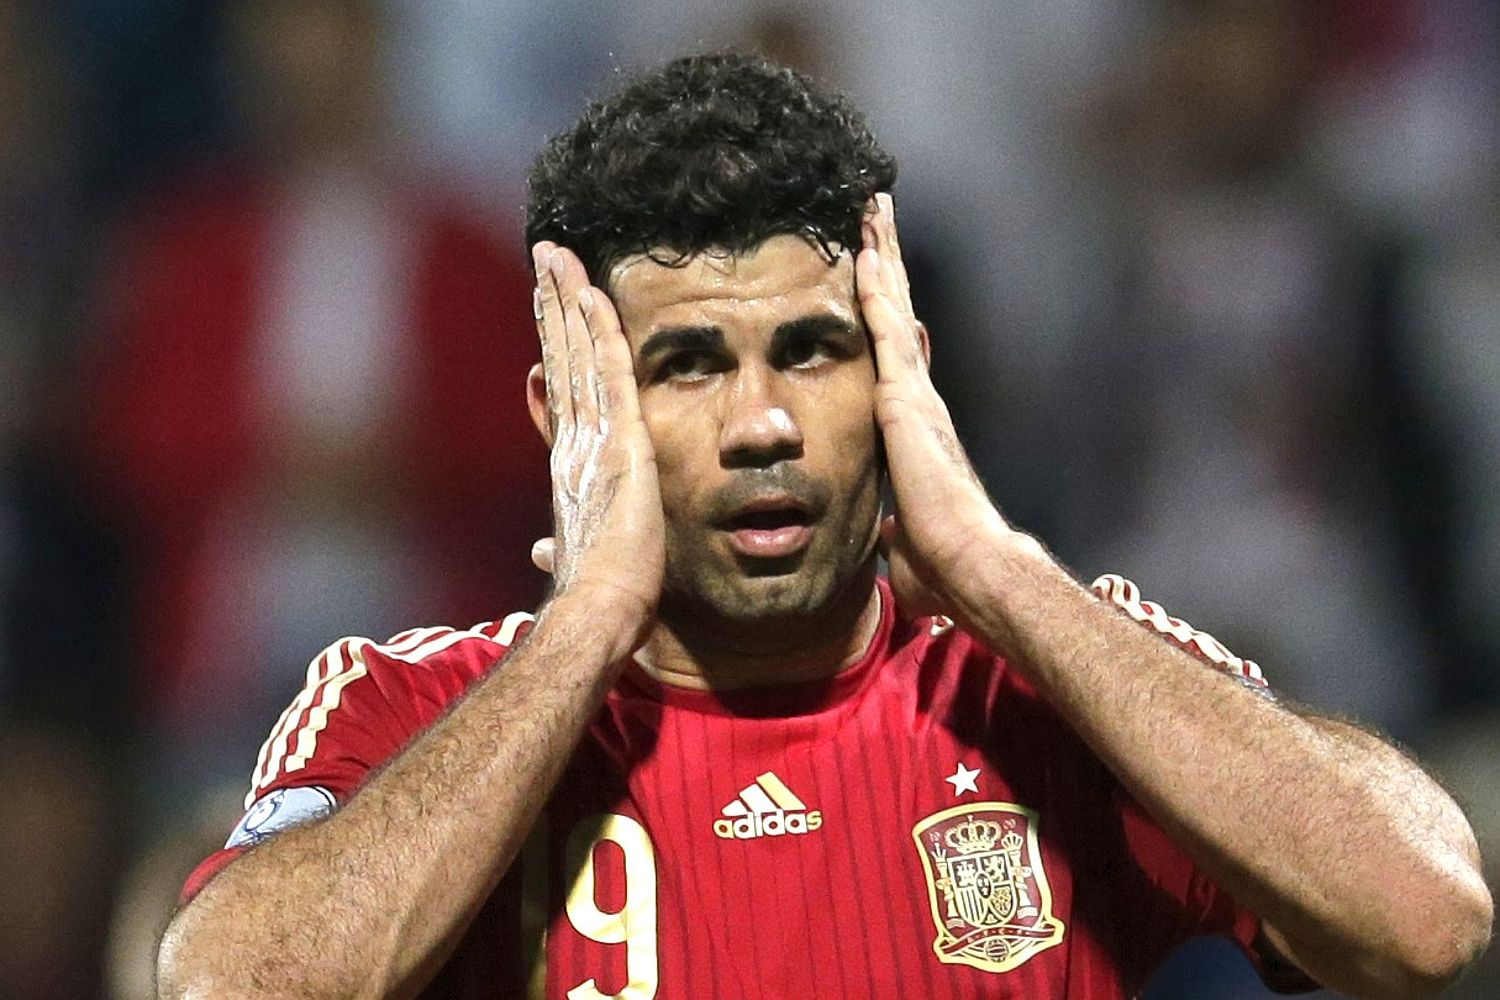 Injury rules Atletico's Costa out of Barca clash